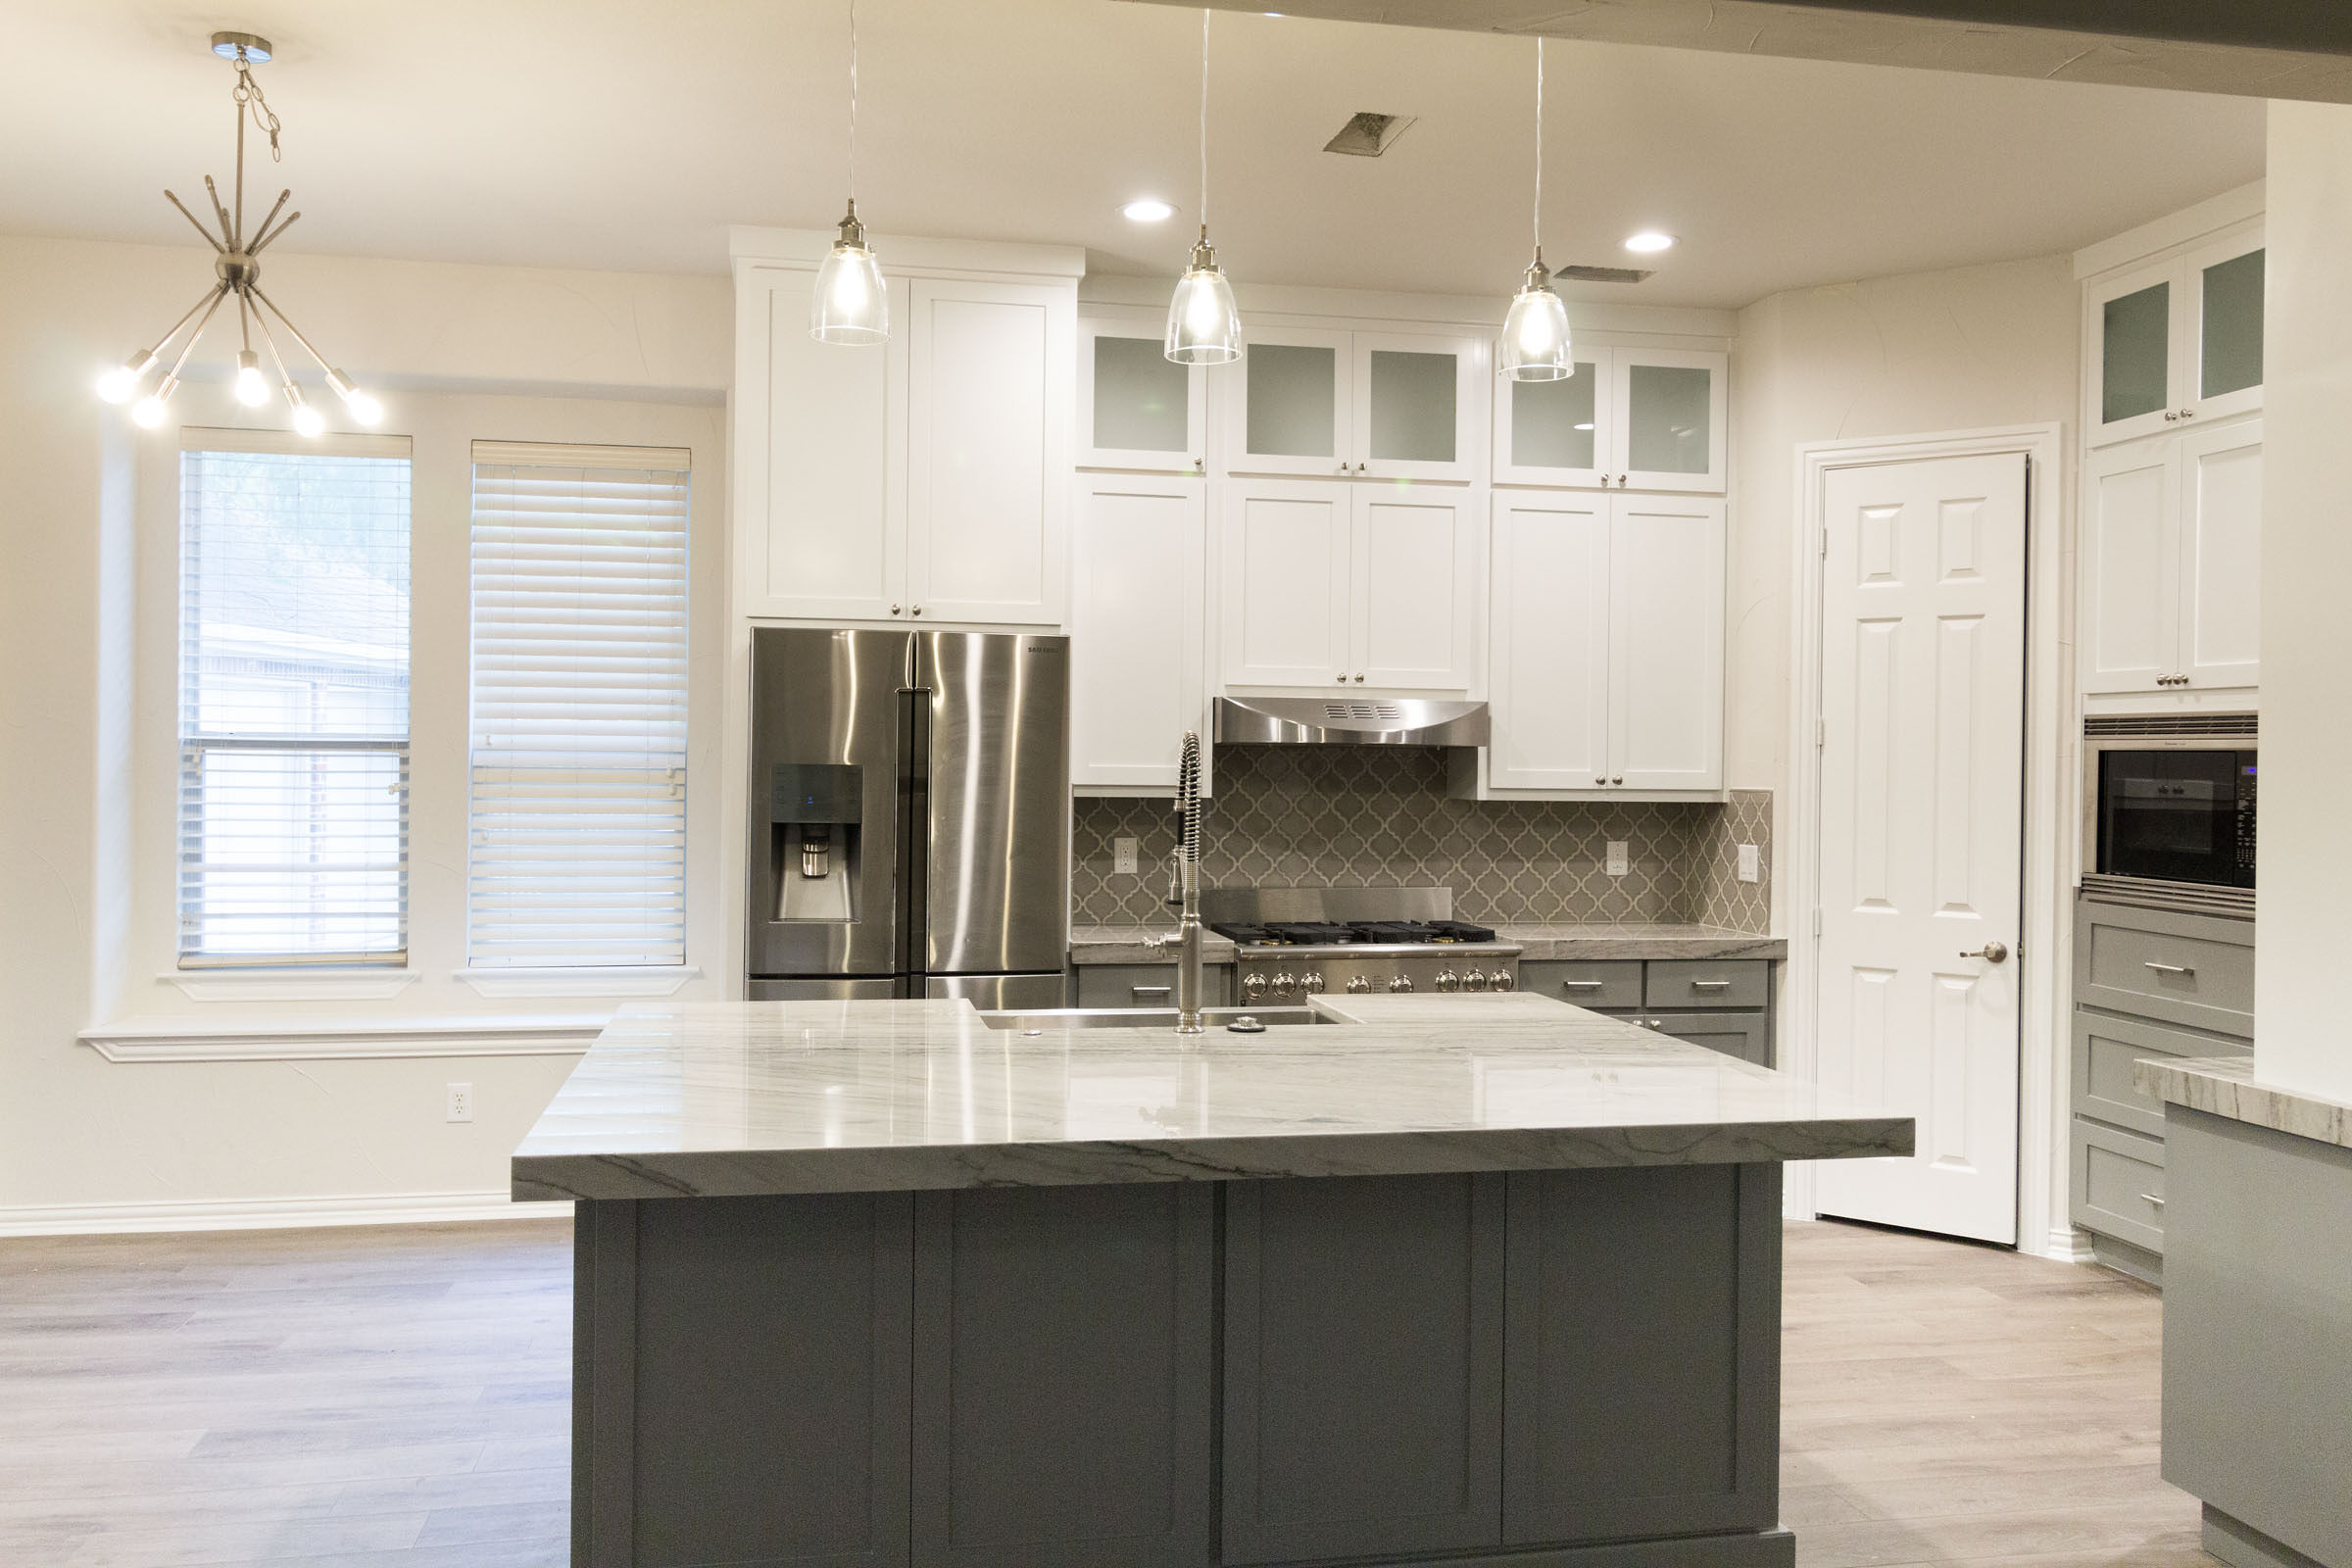 Open floor plan, kitchen remodel, kitchen island, storage and counterspace, white and grey, stunning